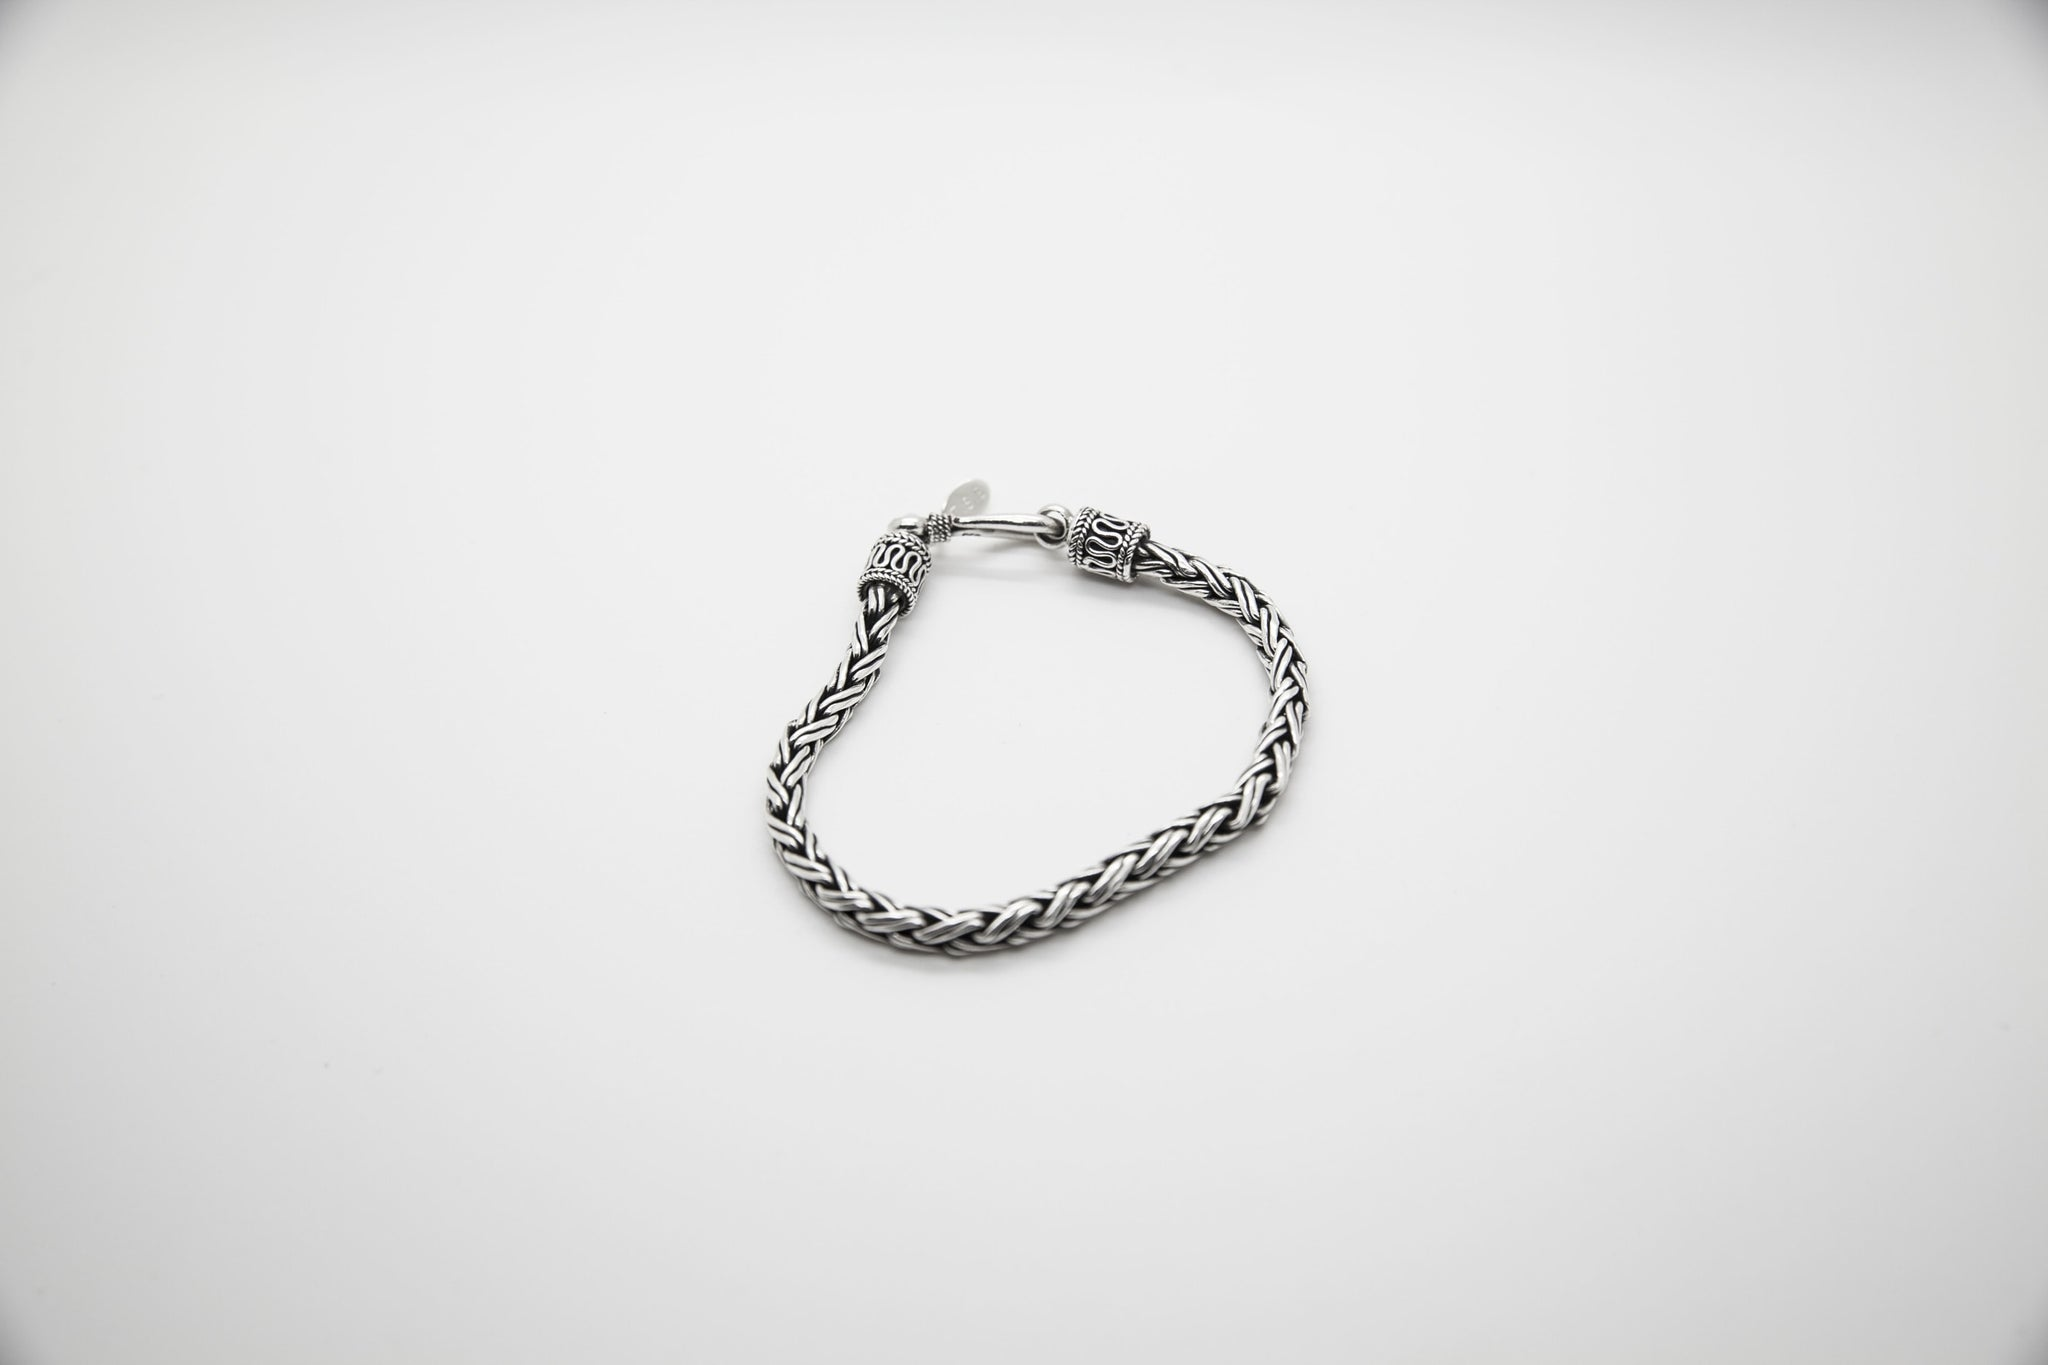 Twisted Bali Bracelet - The Silver Stone